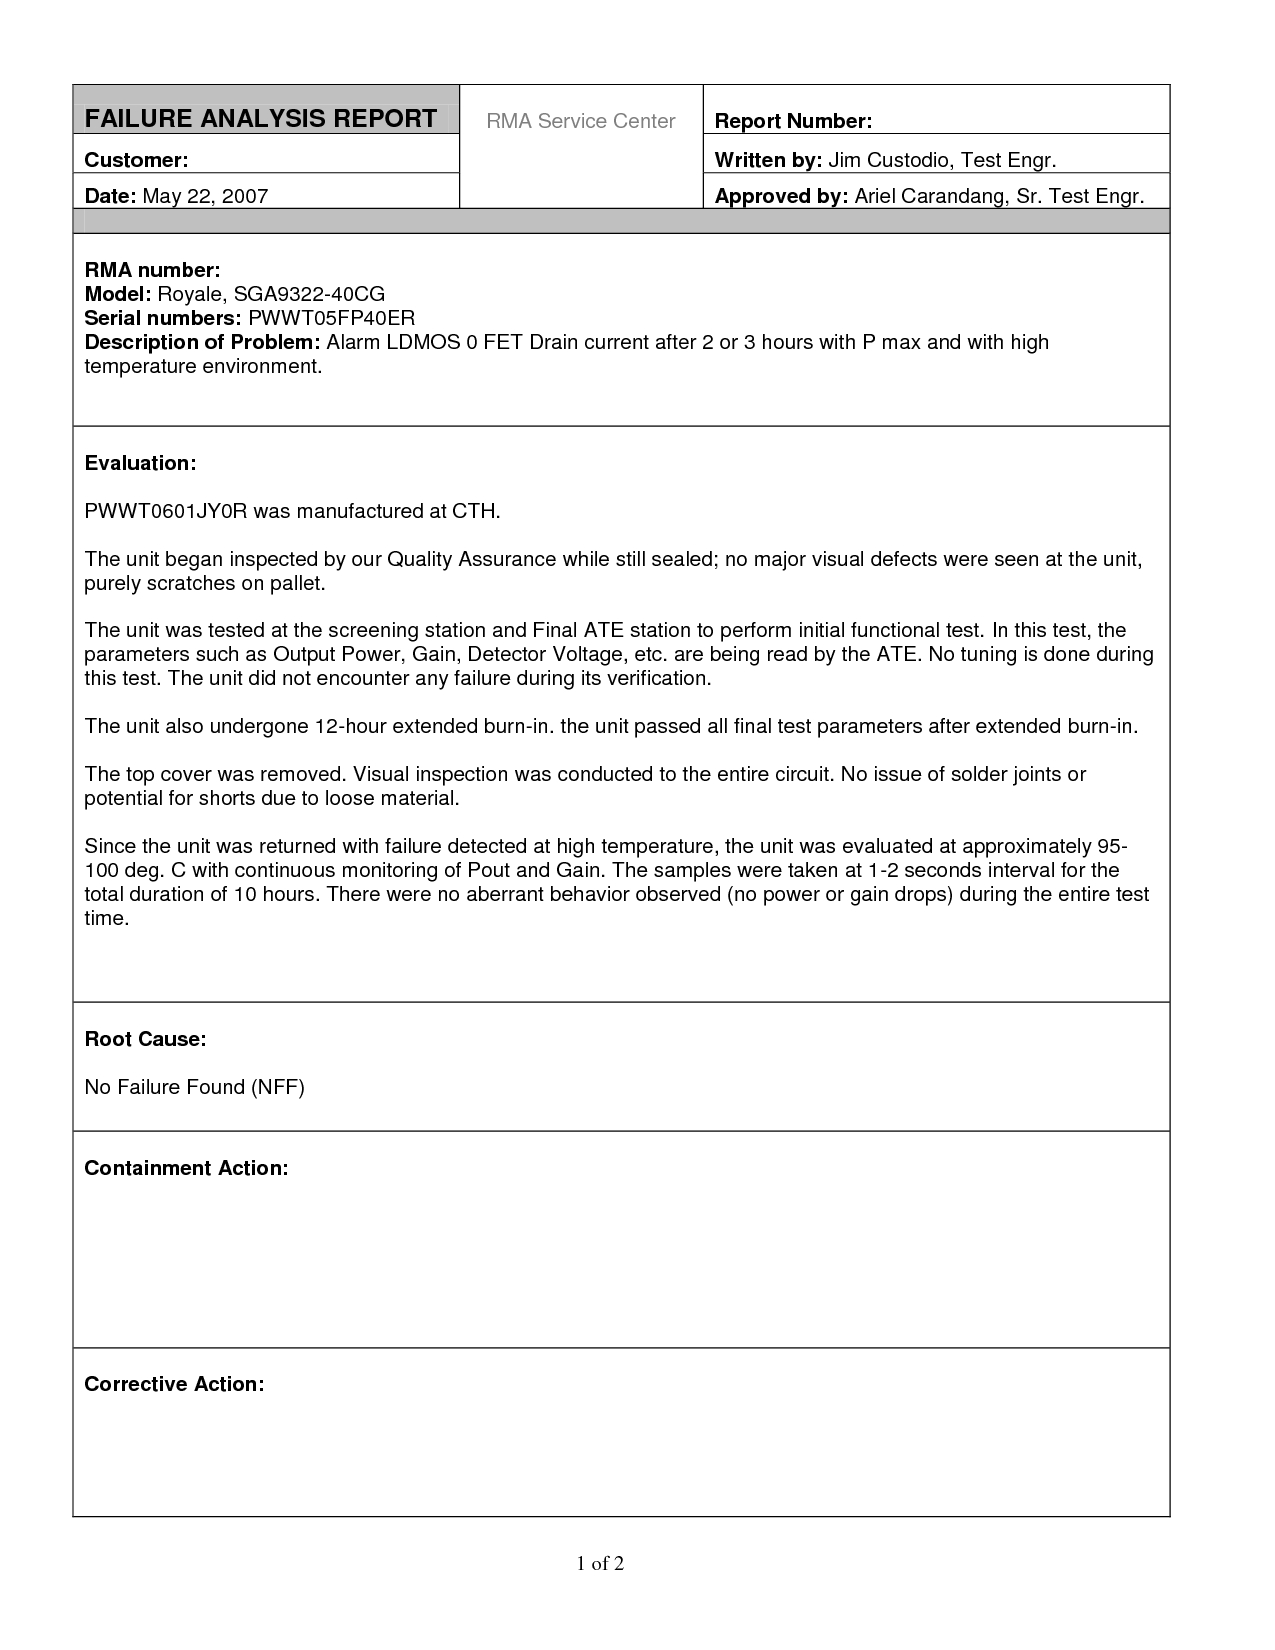 Excellent Failure Analysis Report Writtenjimcustodio34 Within Failure Analysis Report Template